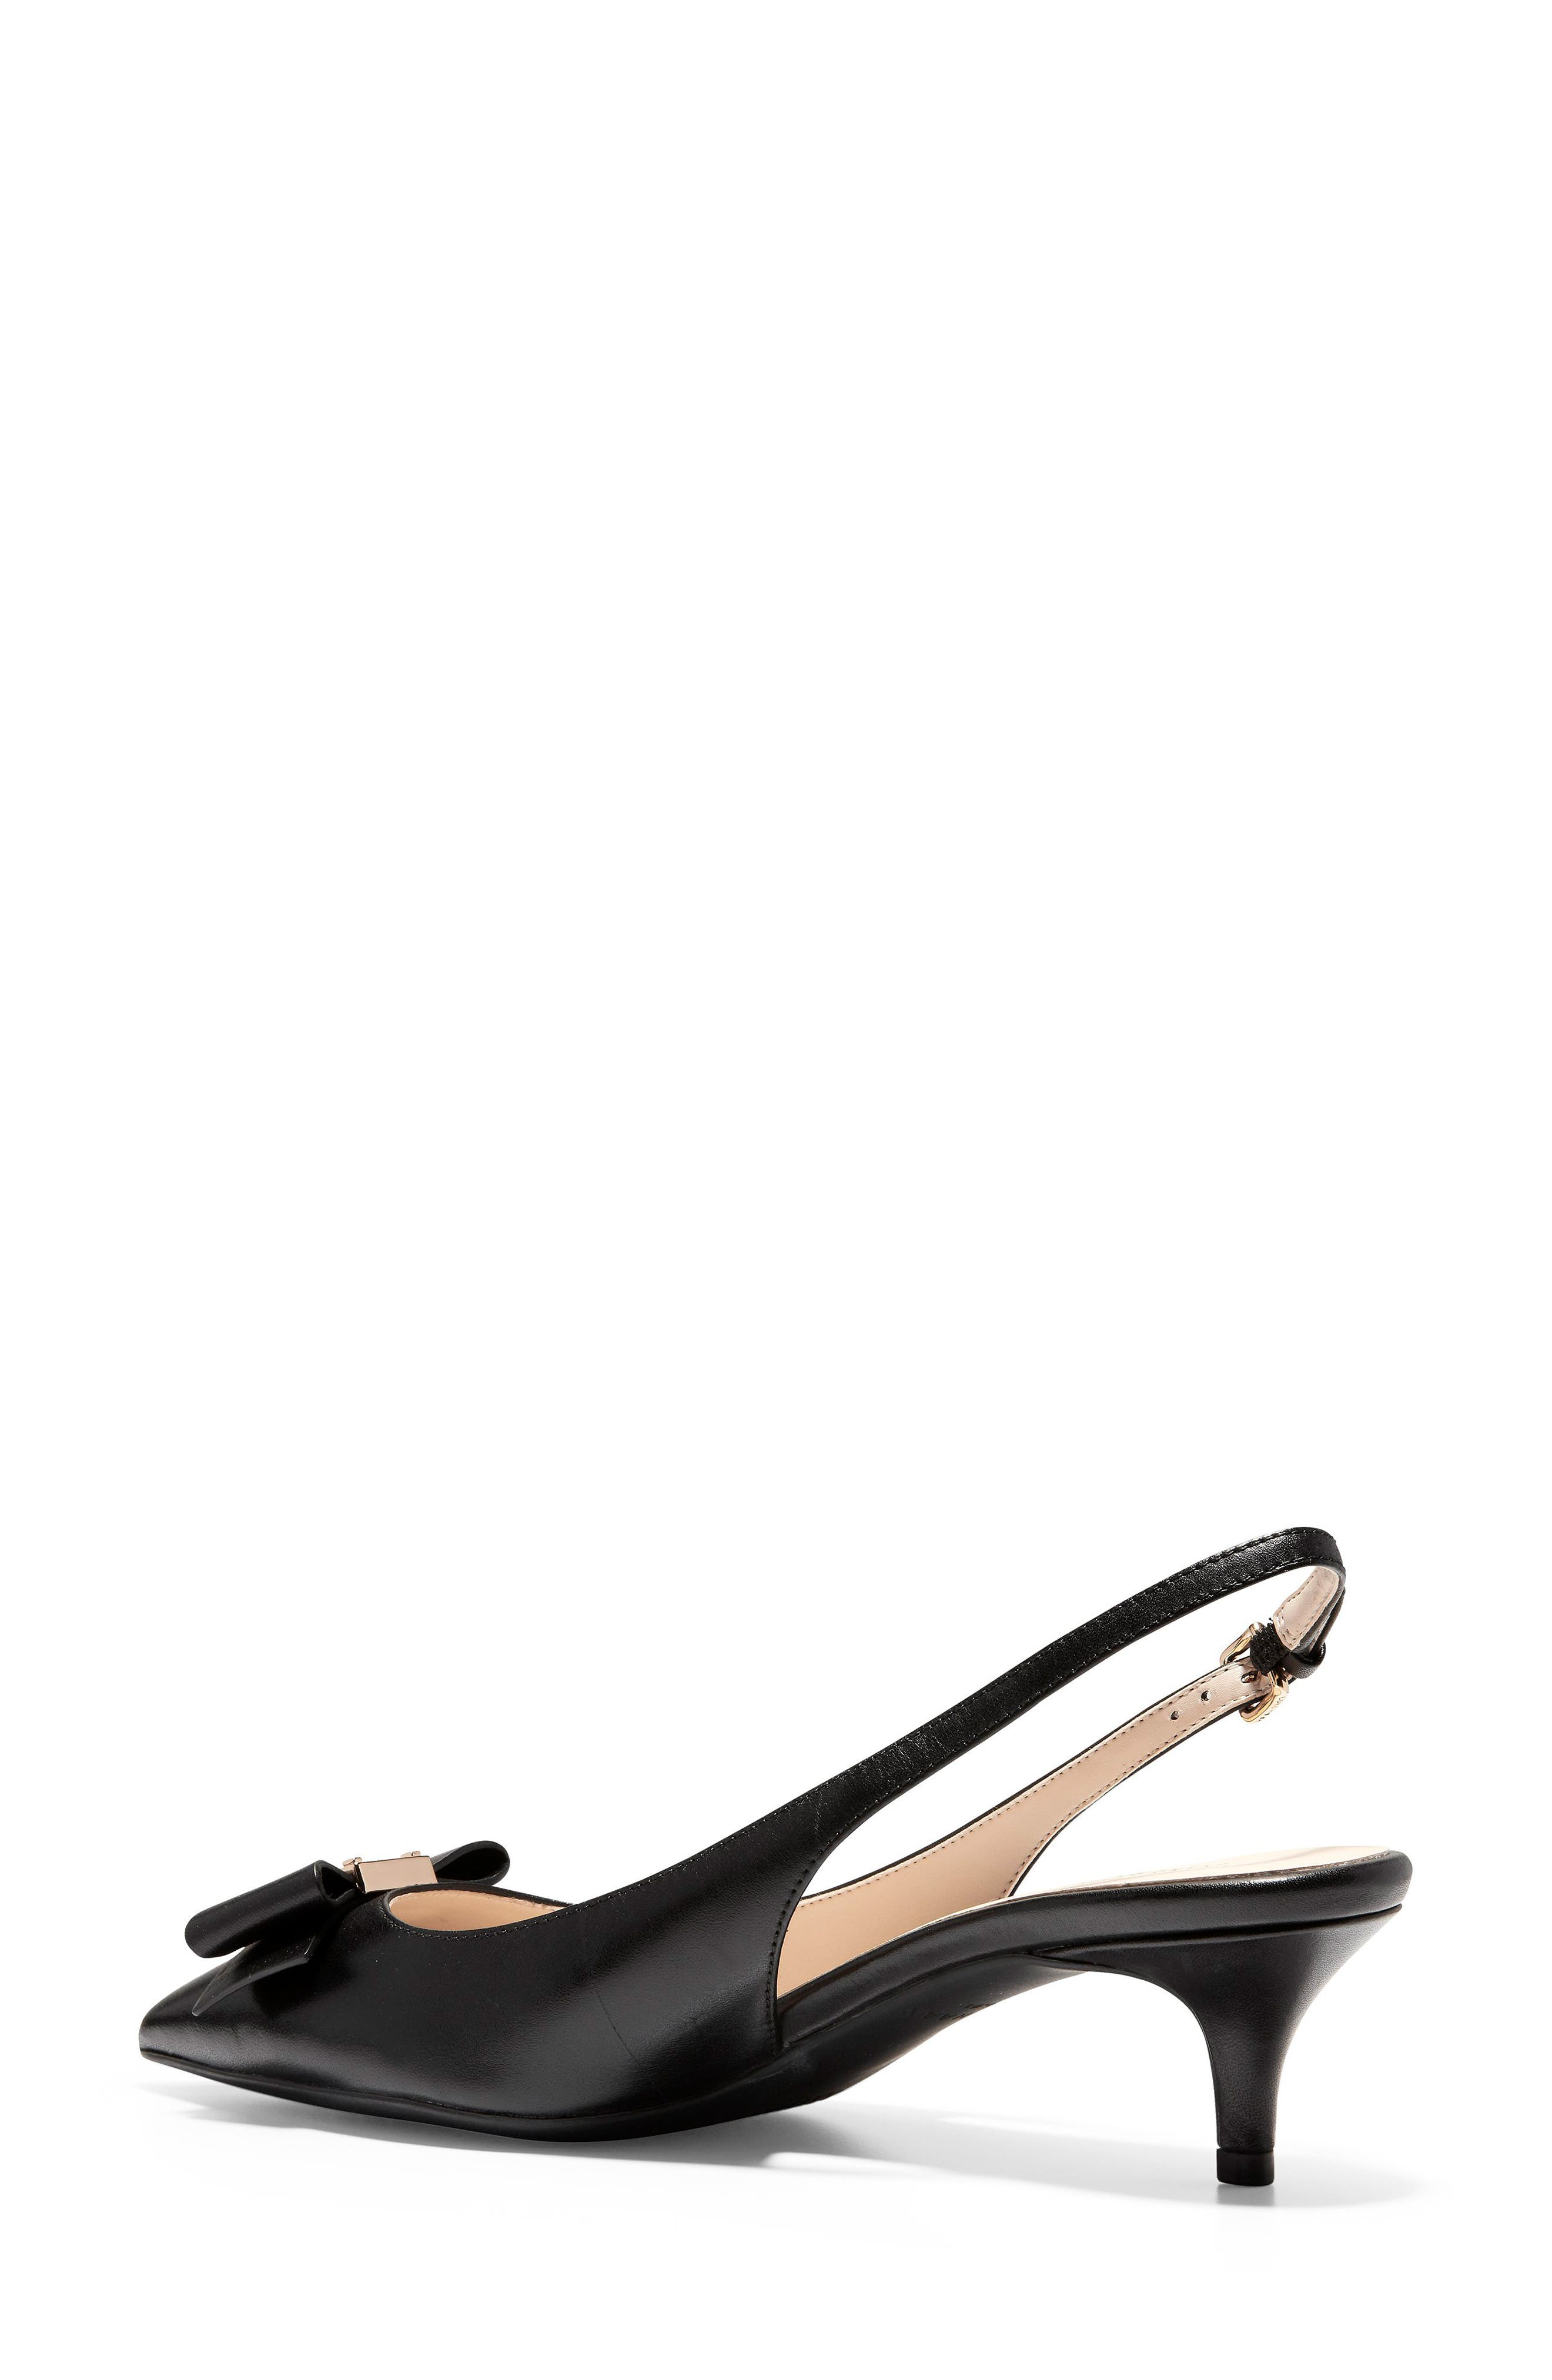 COLE HAAN,                             Tali Bow Slingback Pump,                             Alternate thumbnail 2, color,                             BLACK LEATHER